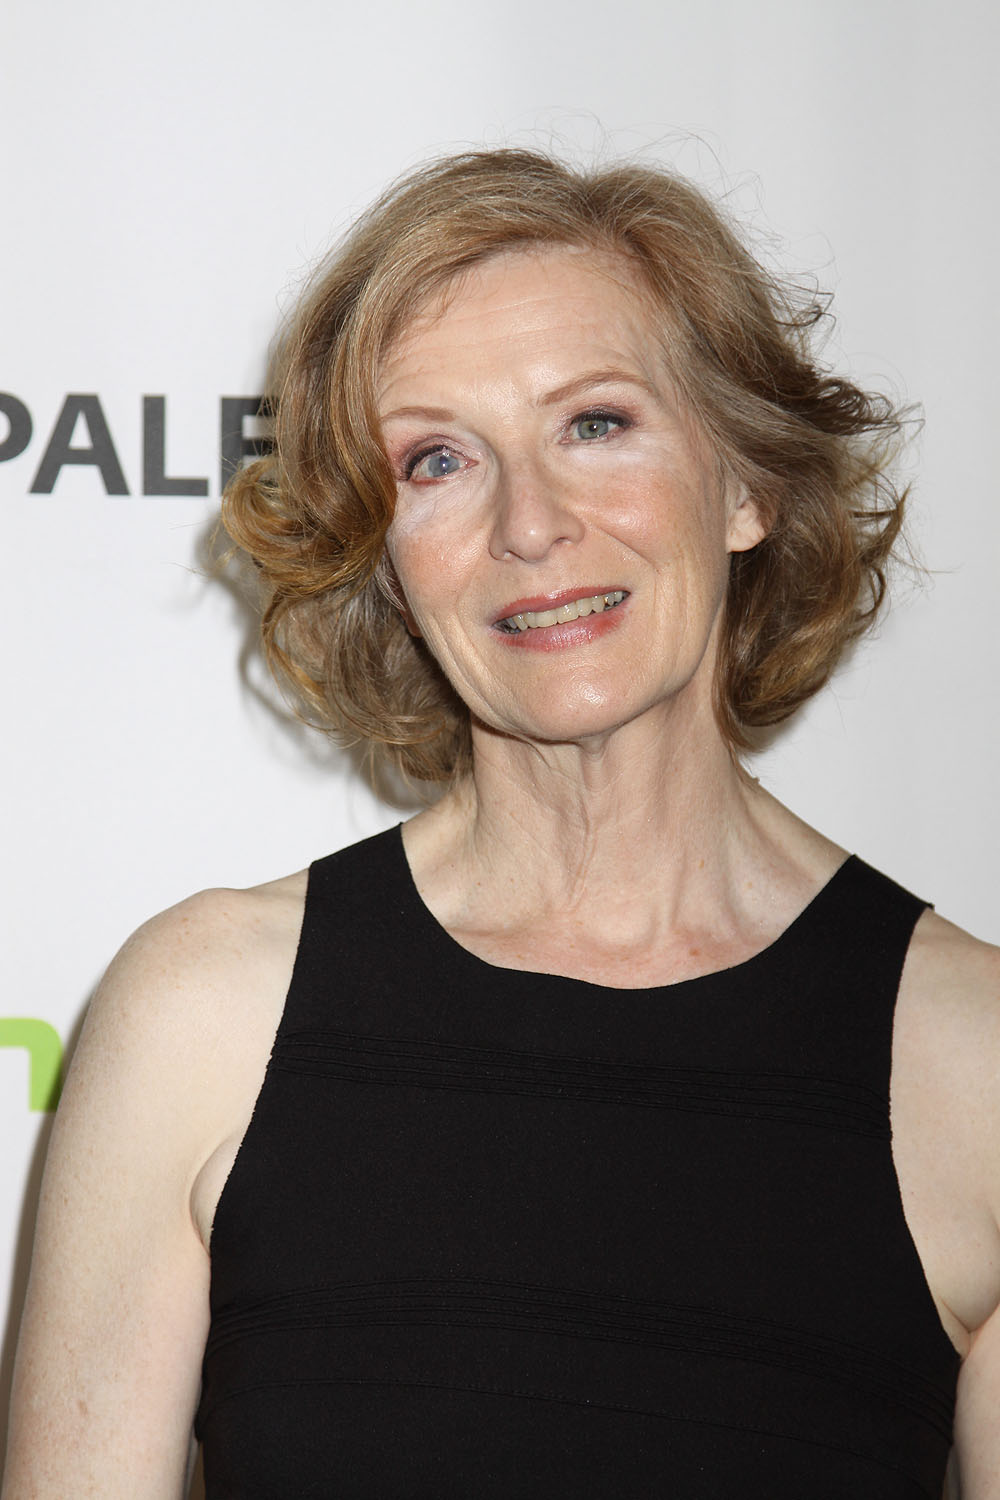 frances conroy the real o'nealsfrances conroy глаз, frances conroy scent of a woman, frances conroy ahs, frances conroy the real o'neals, frances conroy young pictures, frances conroy 1970, frances conroy height, frances conroy eye, frances conroy young, frances conroy eye what happened, frances conroy family, frances conroy instagram, frances conroy, frances conroy ahs hotel, frances conroy american horror story, frances conroy hotel, frances conroy how i met your mother, frances conroy grey's anatomy, frances conroy twitter, frances conroy auge